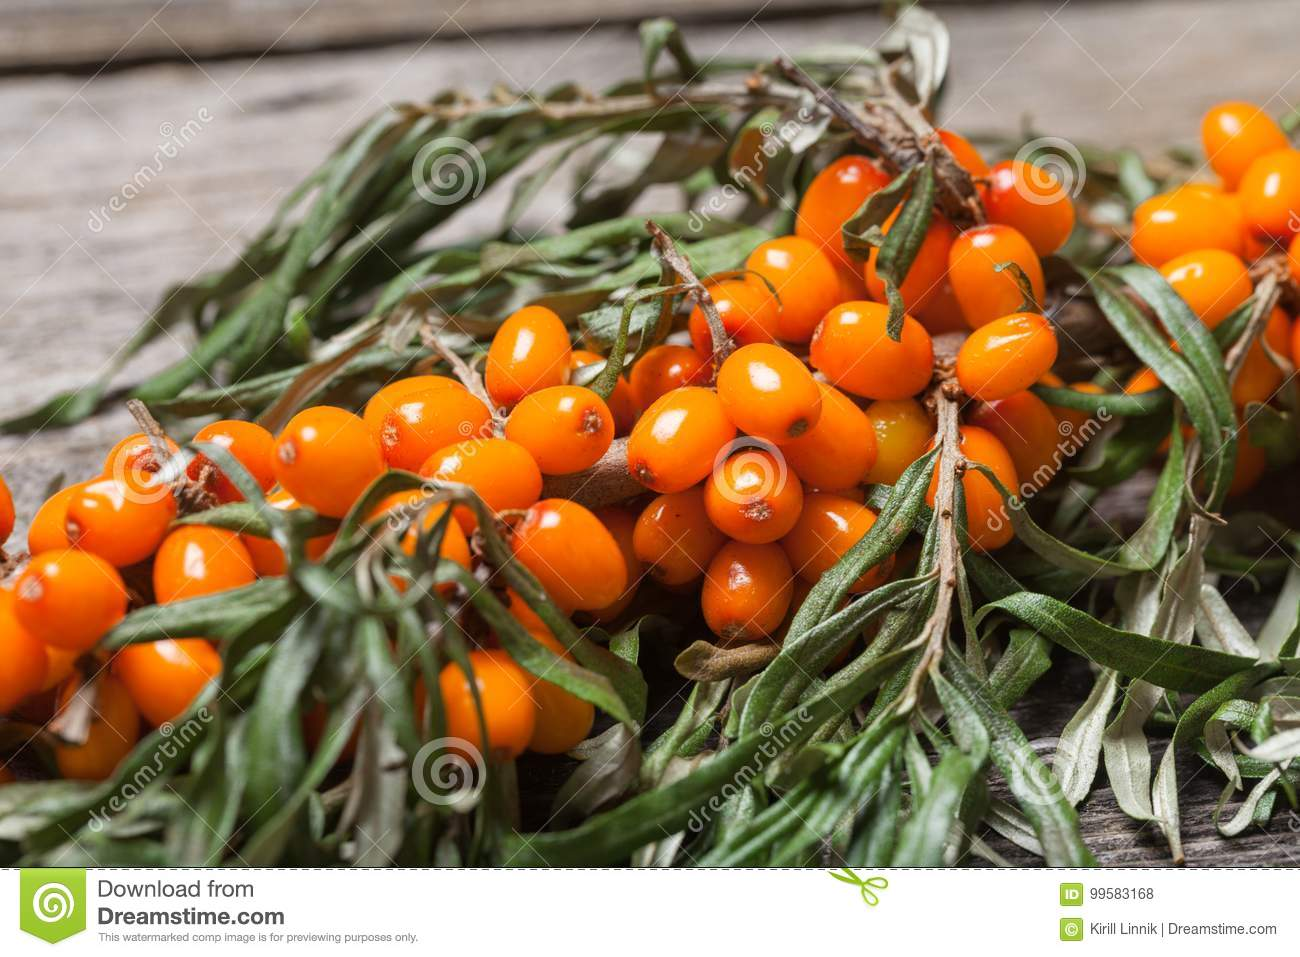 Download Fresh Seabuckthorn On The Table Stock Photo - Image of harvest, herbal: 99583168